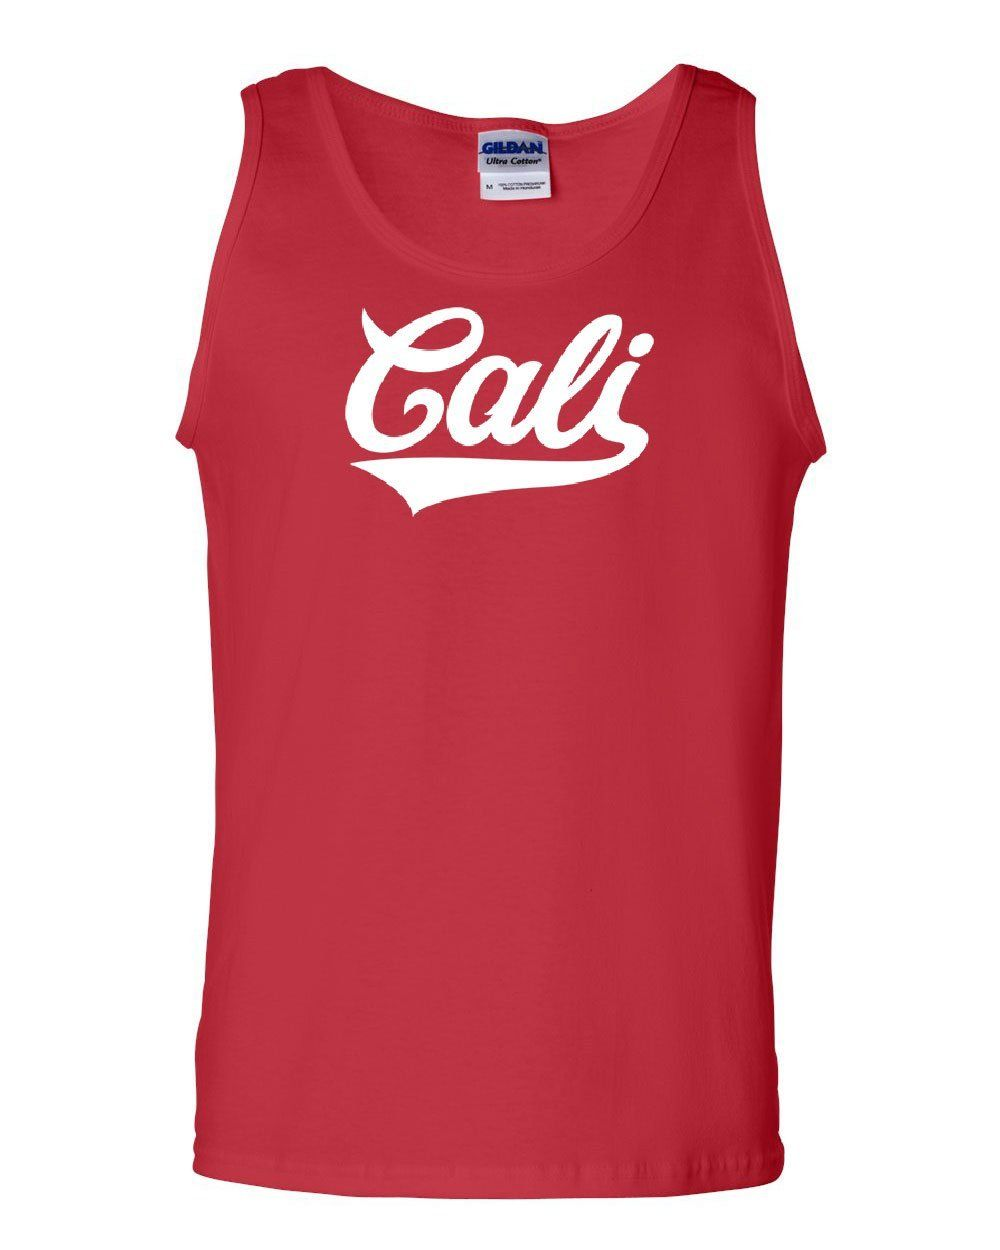 Cali Swoosh Tail V-Neck T-Shirt California Republic CA LA San Francisco Tee